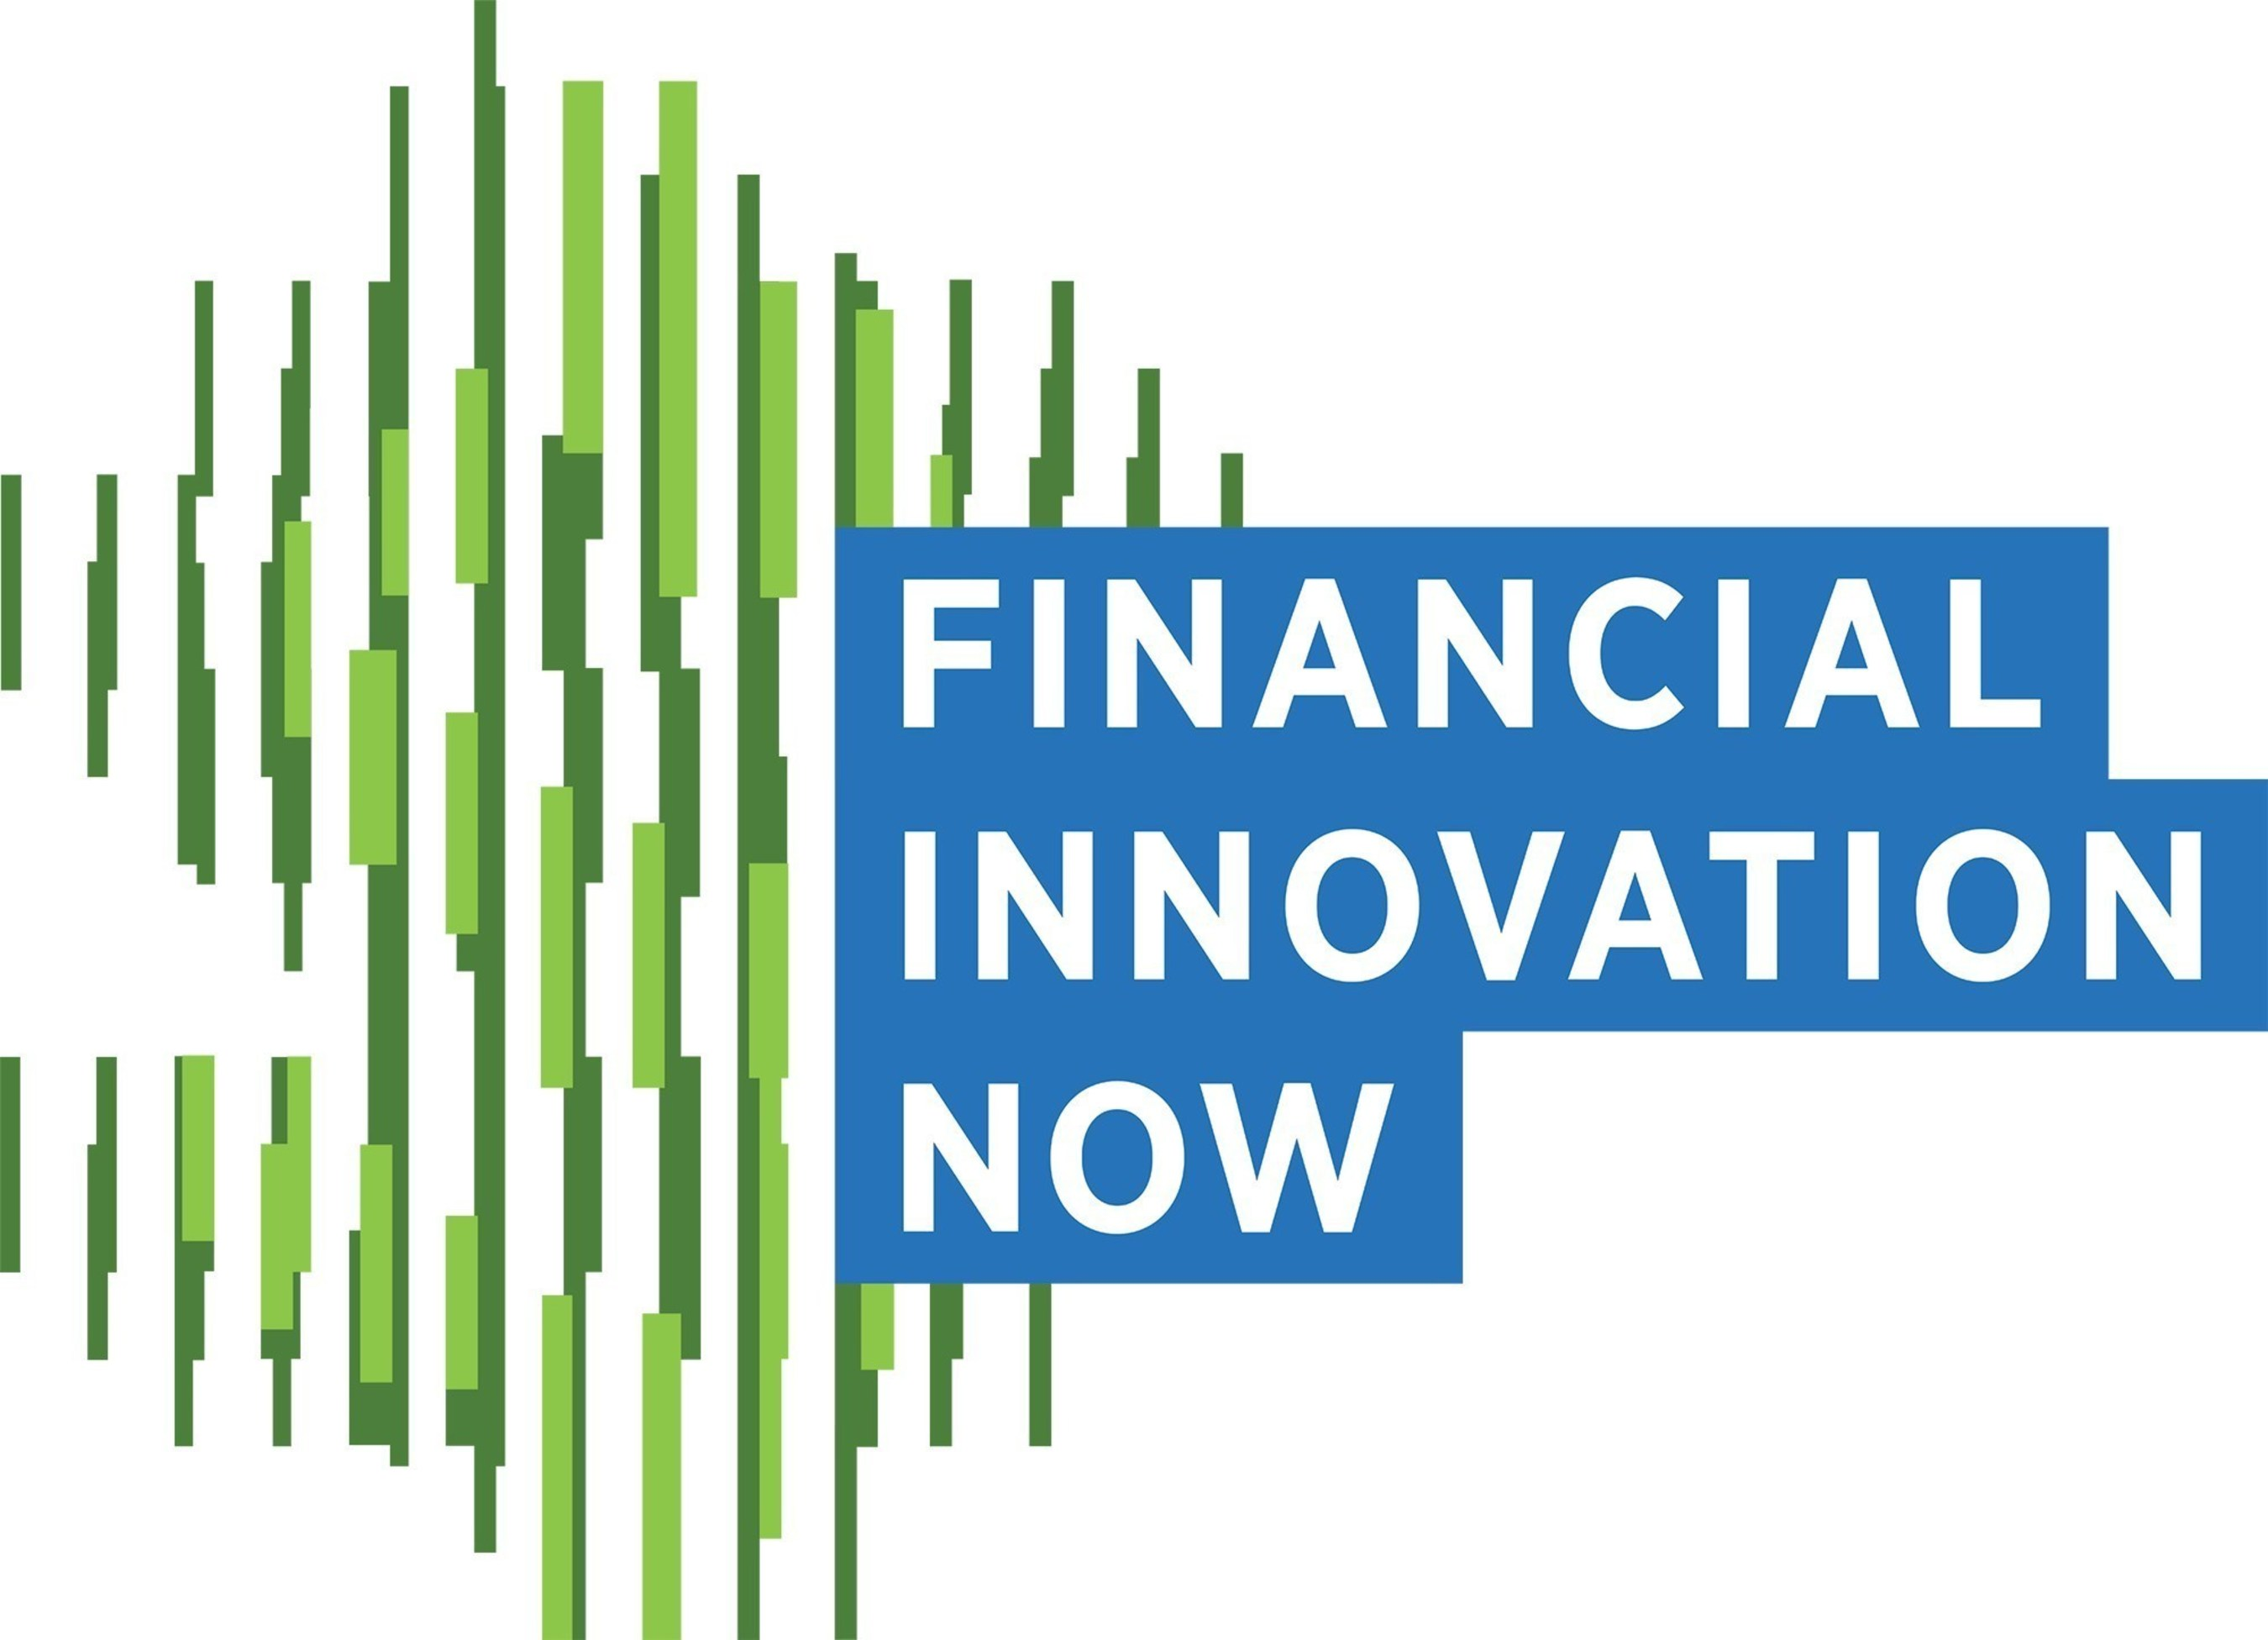 Financial Innovation Now